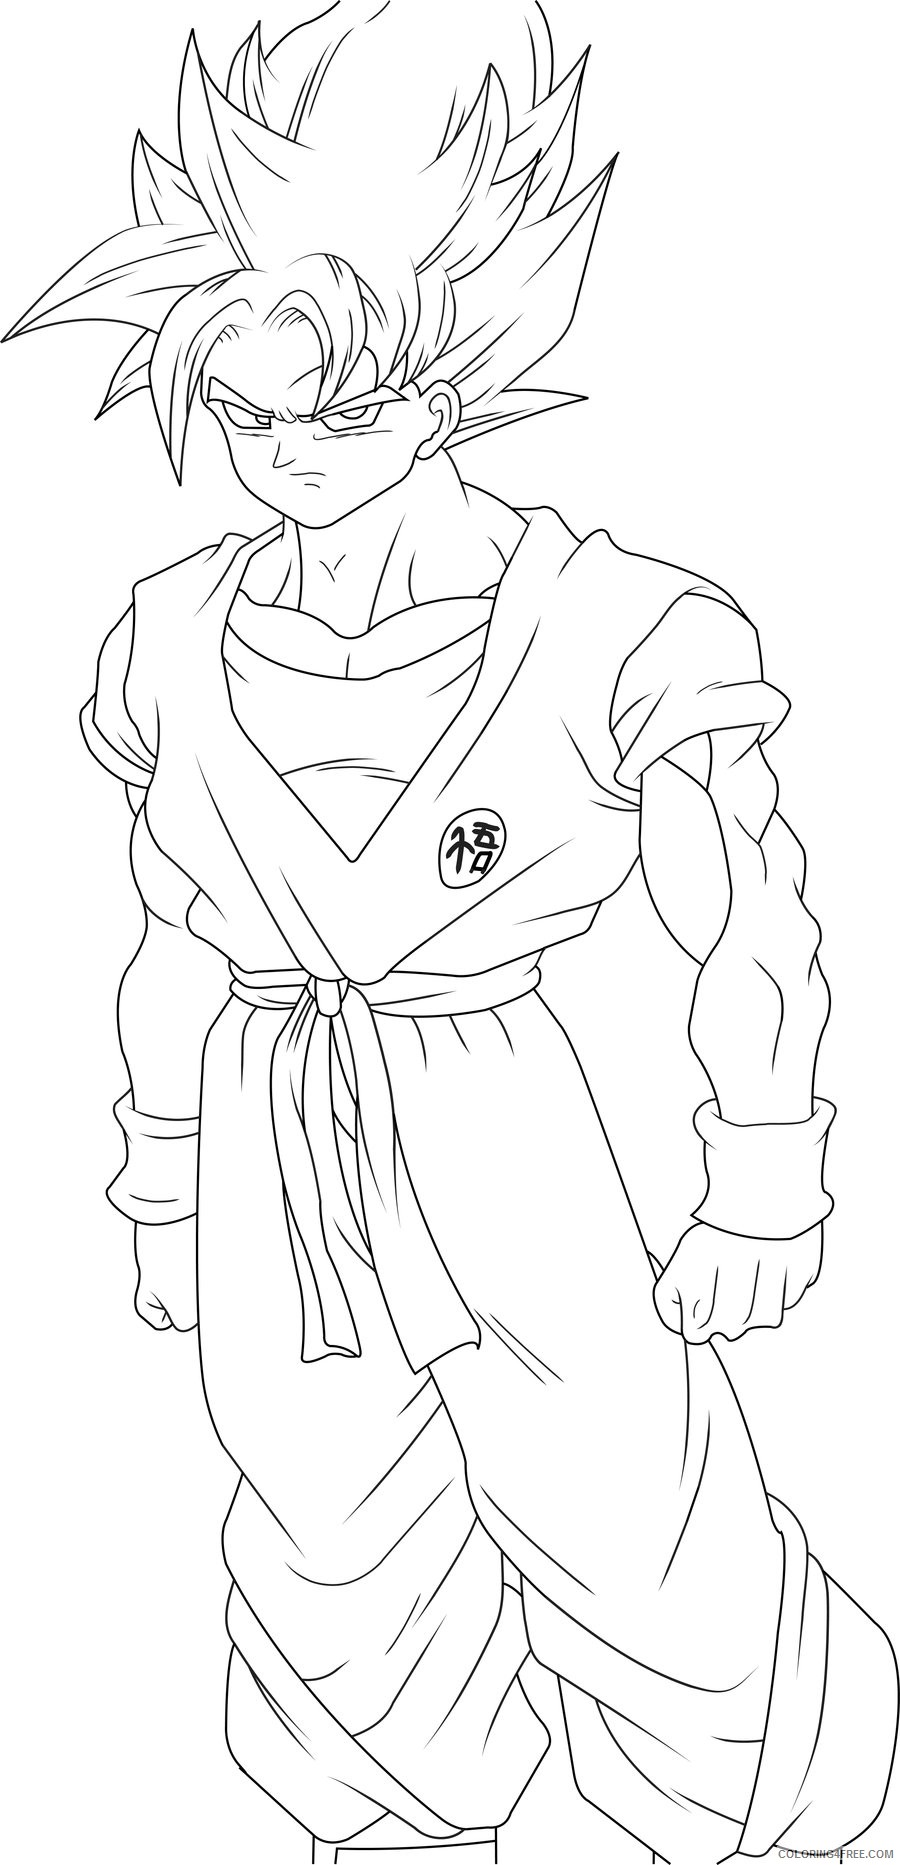 goku coloring pages free to print Coloring4free